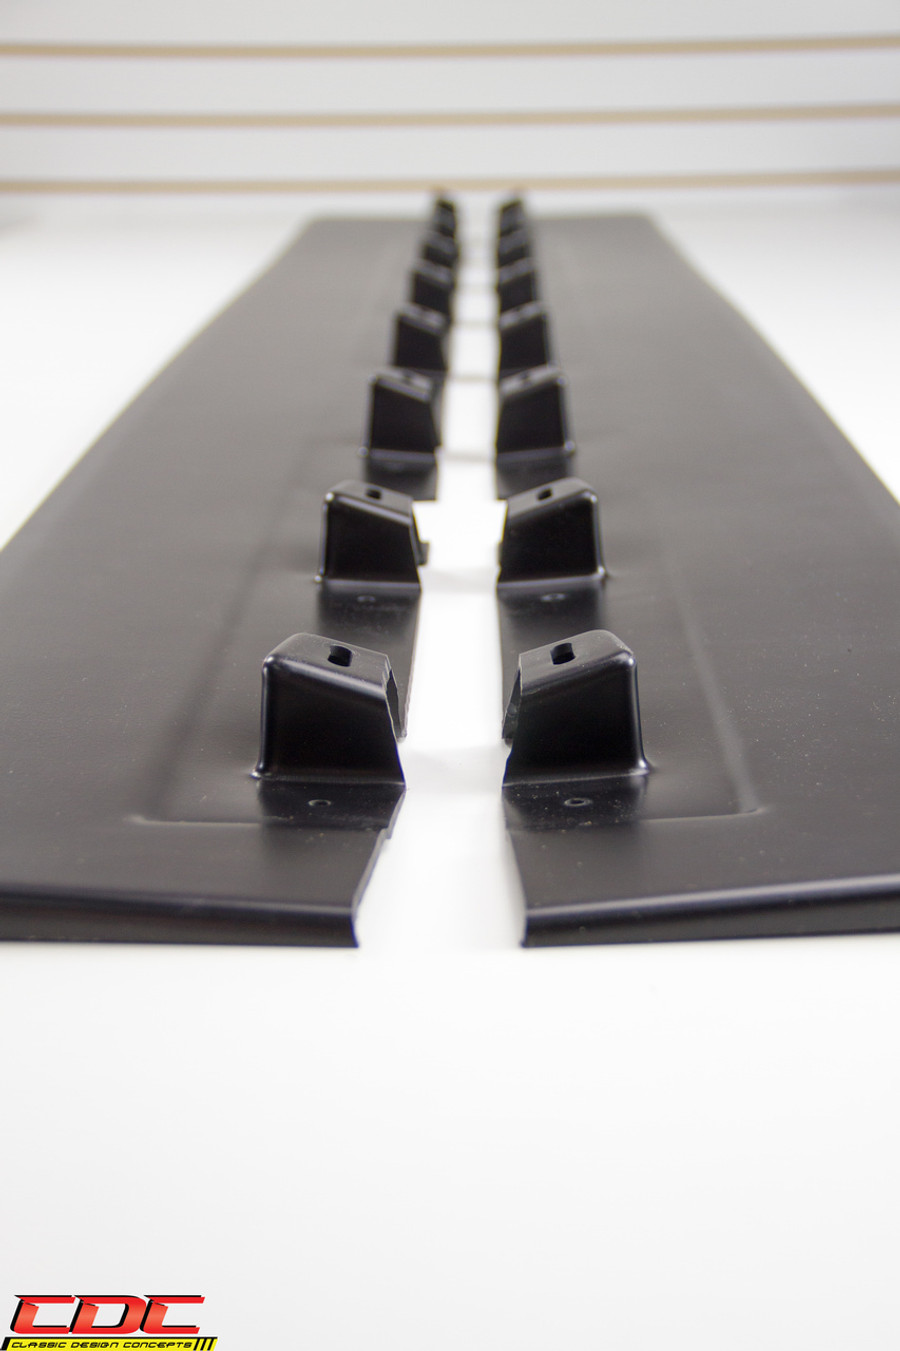 Product Material: UV Stable ABS